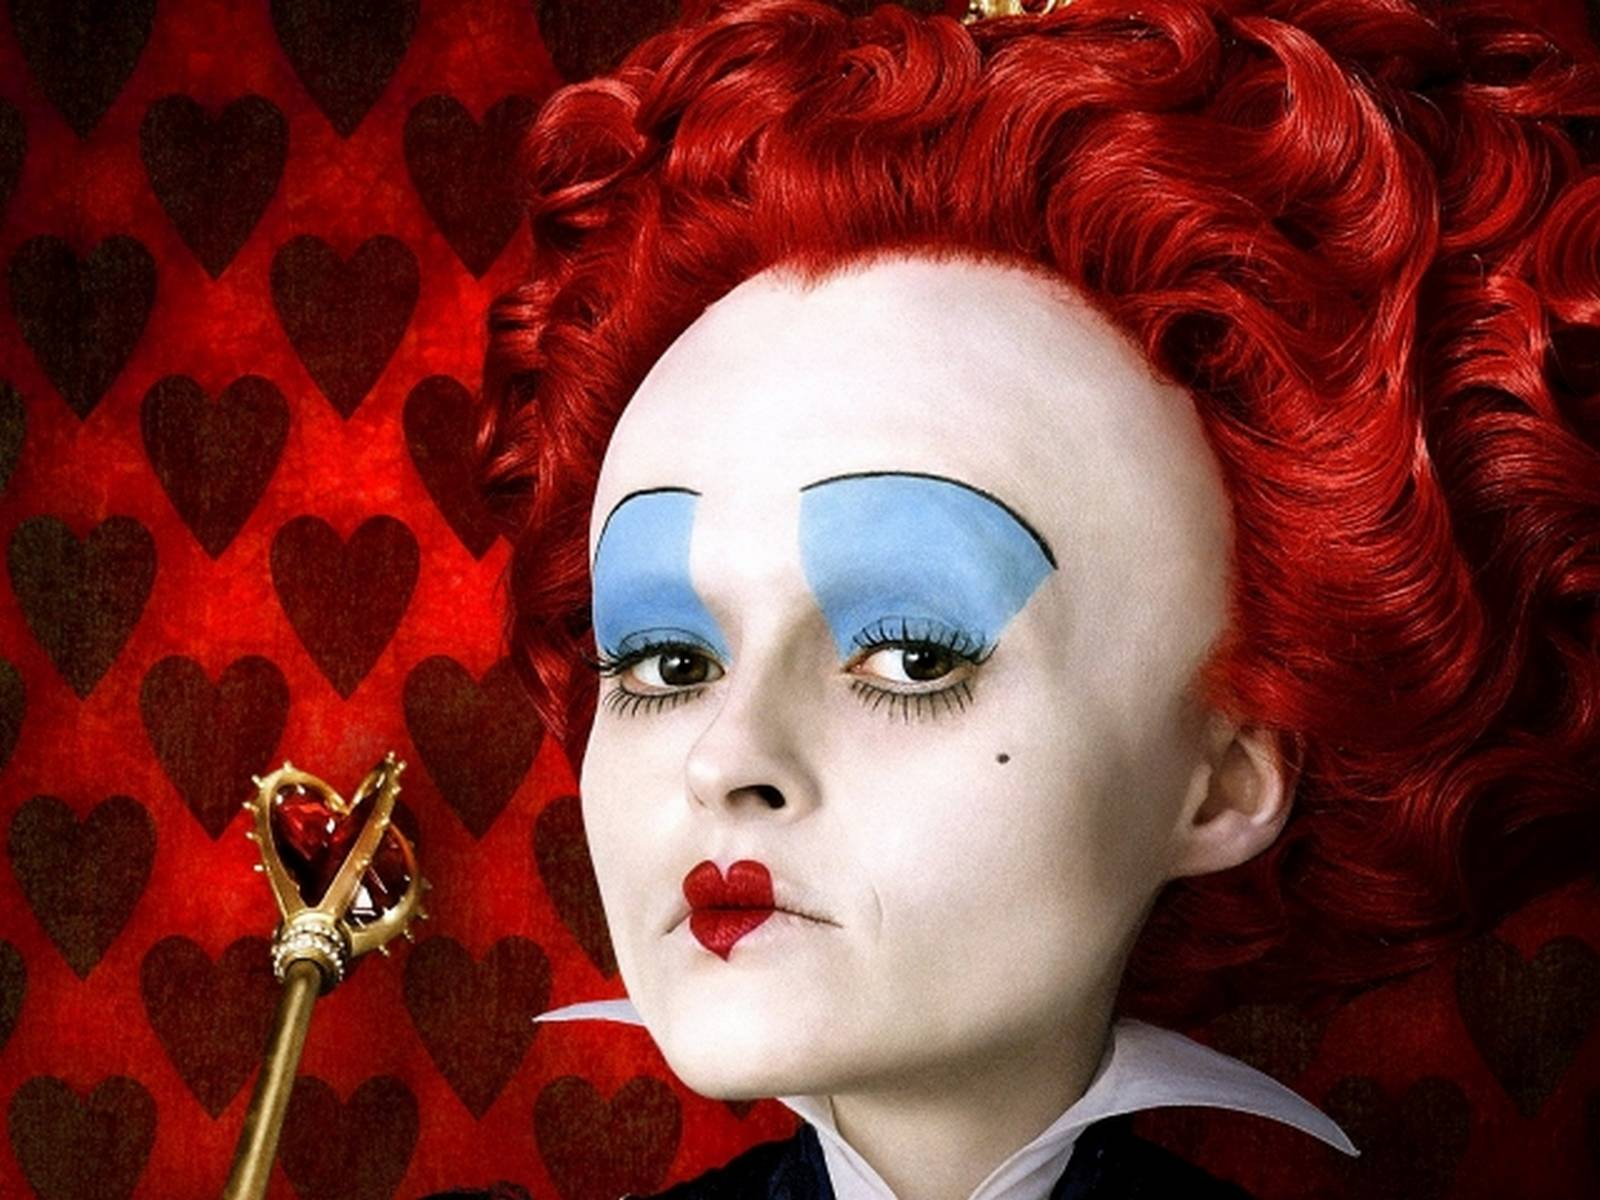 Alice in Wonderland  2010  AliceQueen Of Hearts Alice In Wonderland Tim Burton